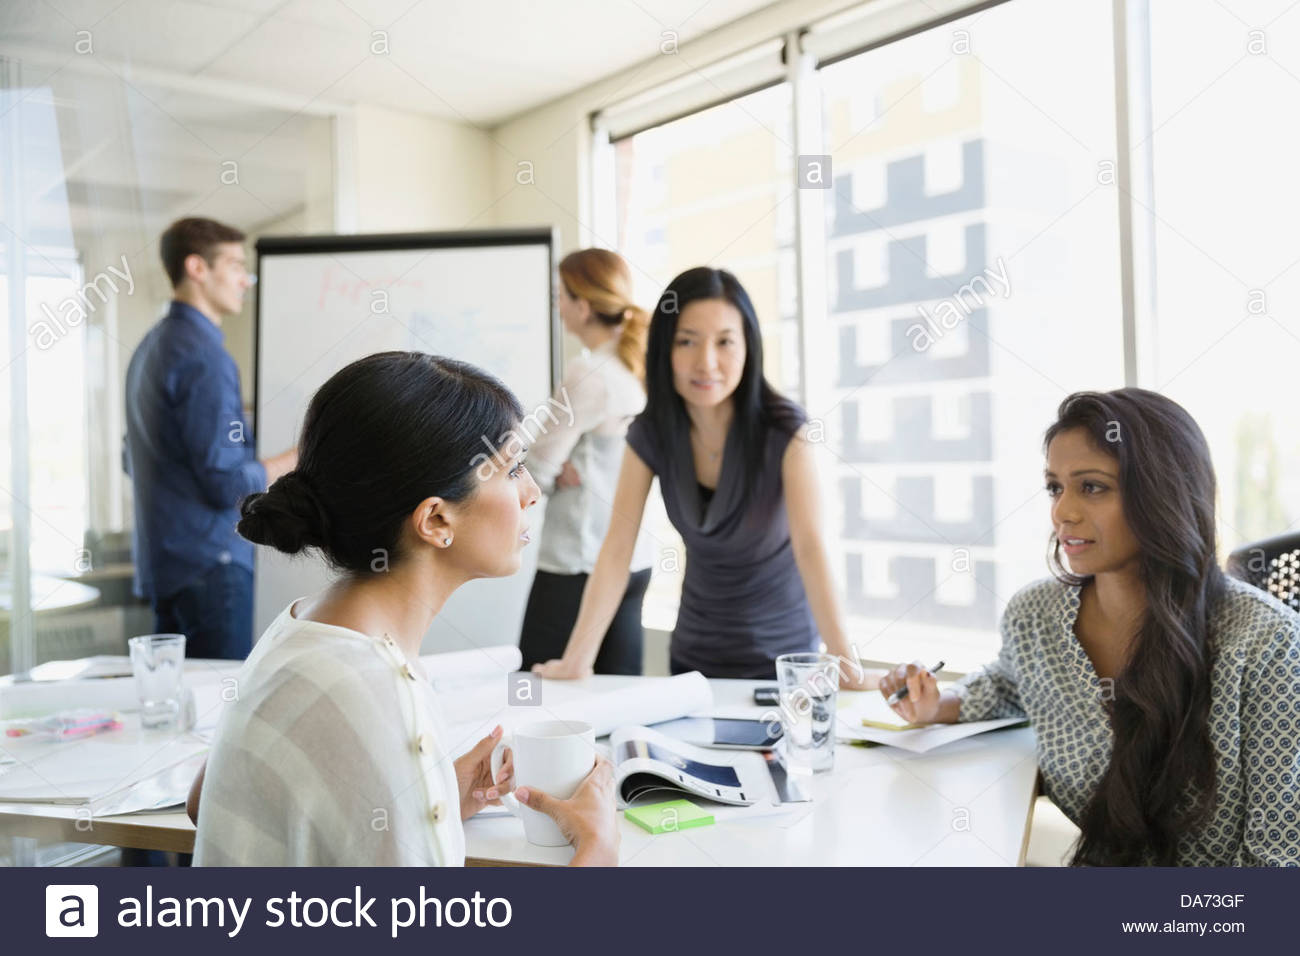 Business colleagues working on project in office - Stock Image